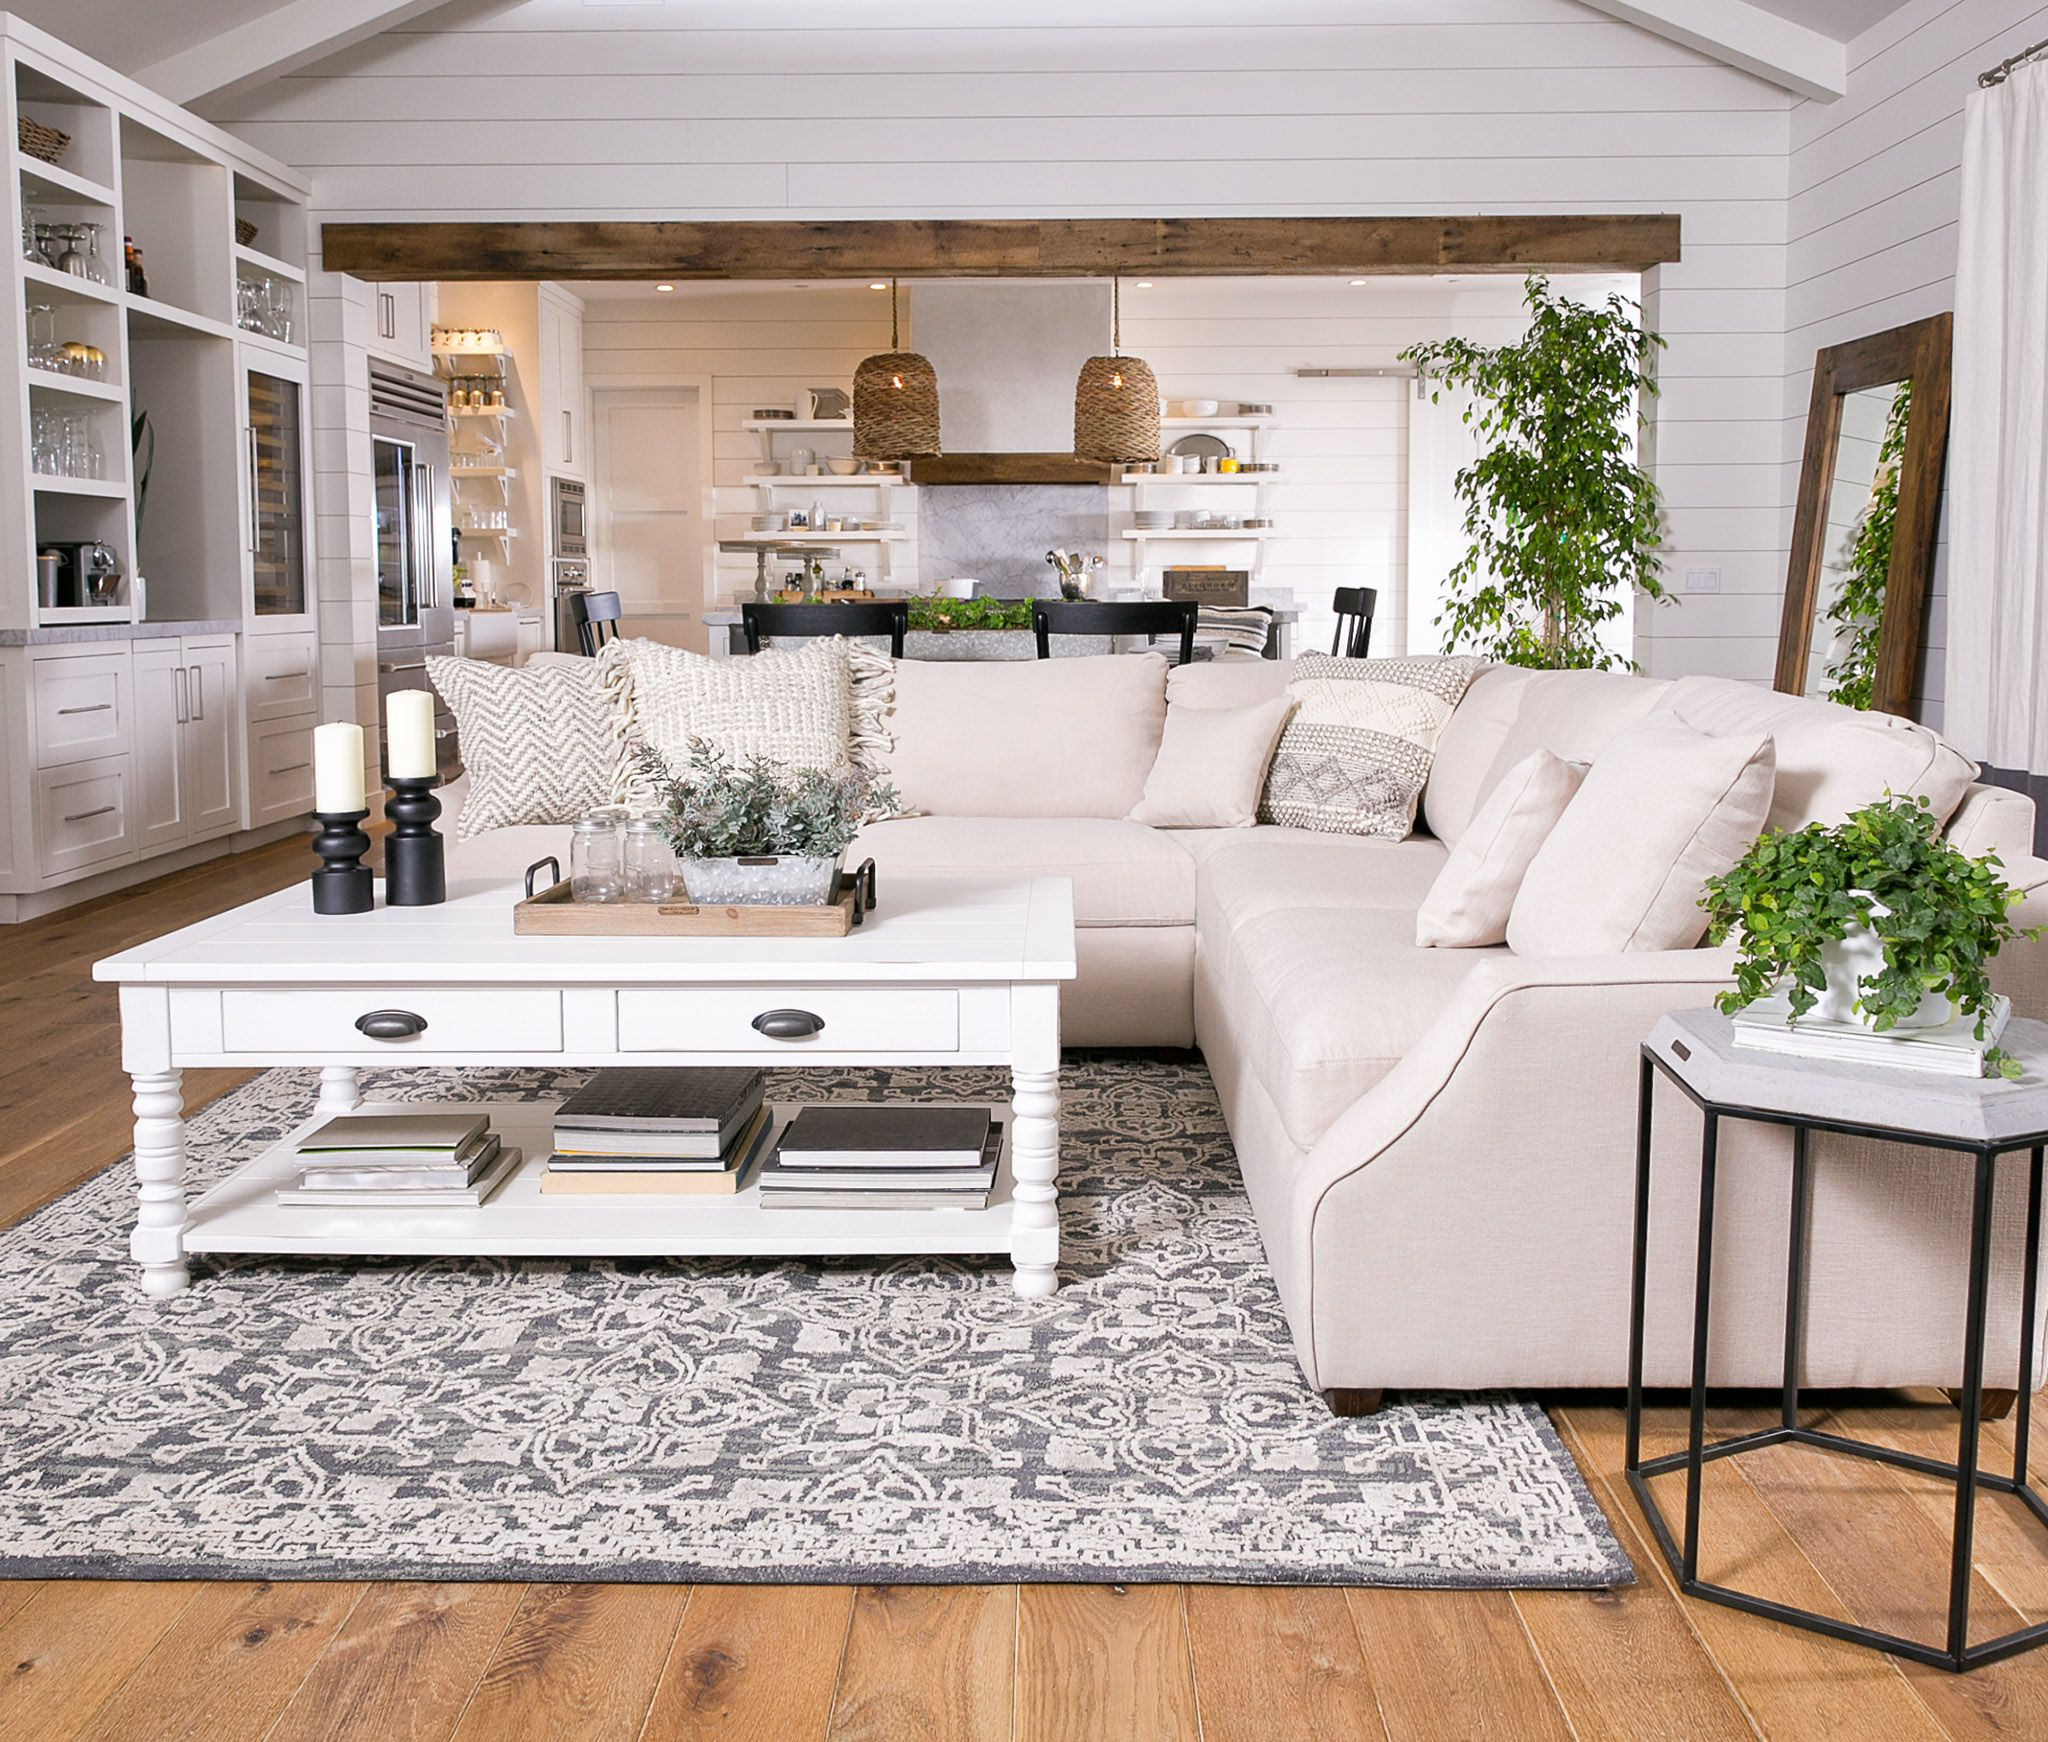 2018 Magnolia Home Homestead 3 Piece Sectionaljoanna Gaines In 2019 Pertaining To Magnolia Home Homestead Sofa Chairs By Joanna Gaines (View 13 of 20)